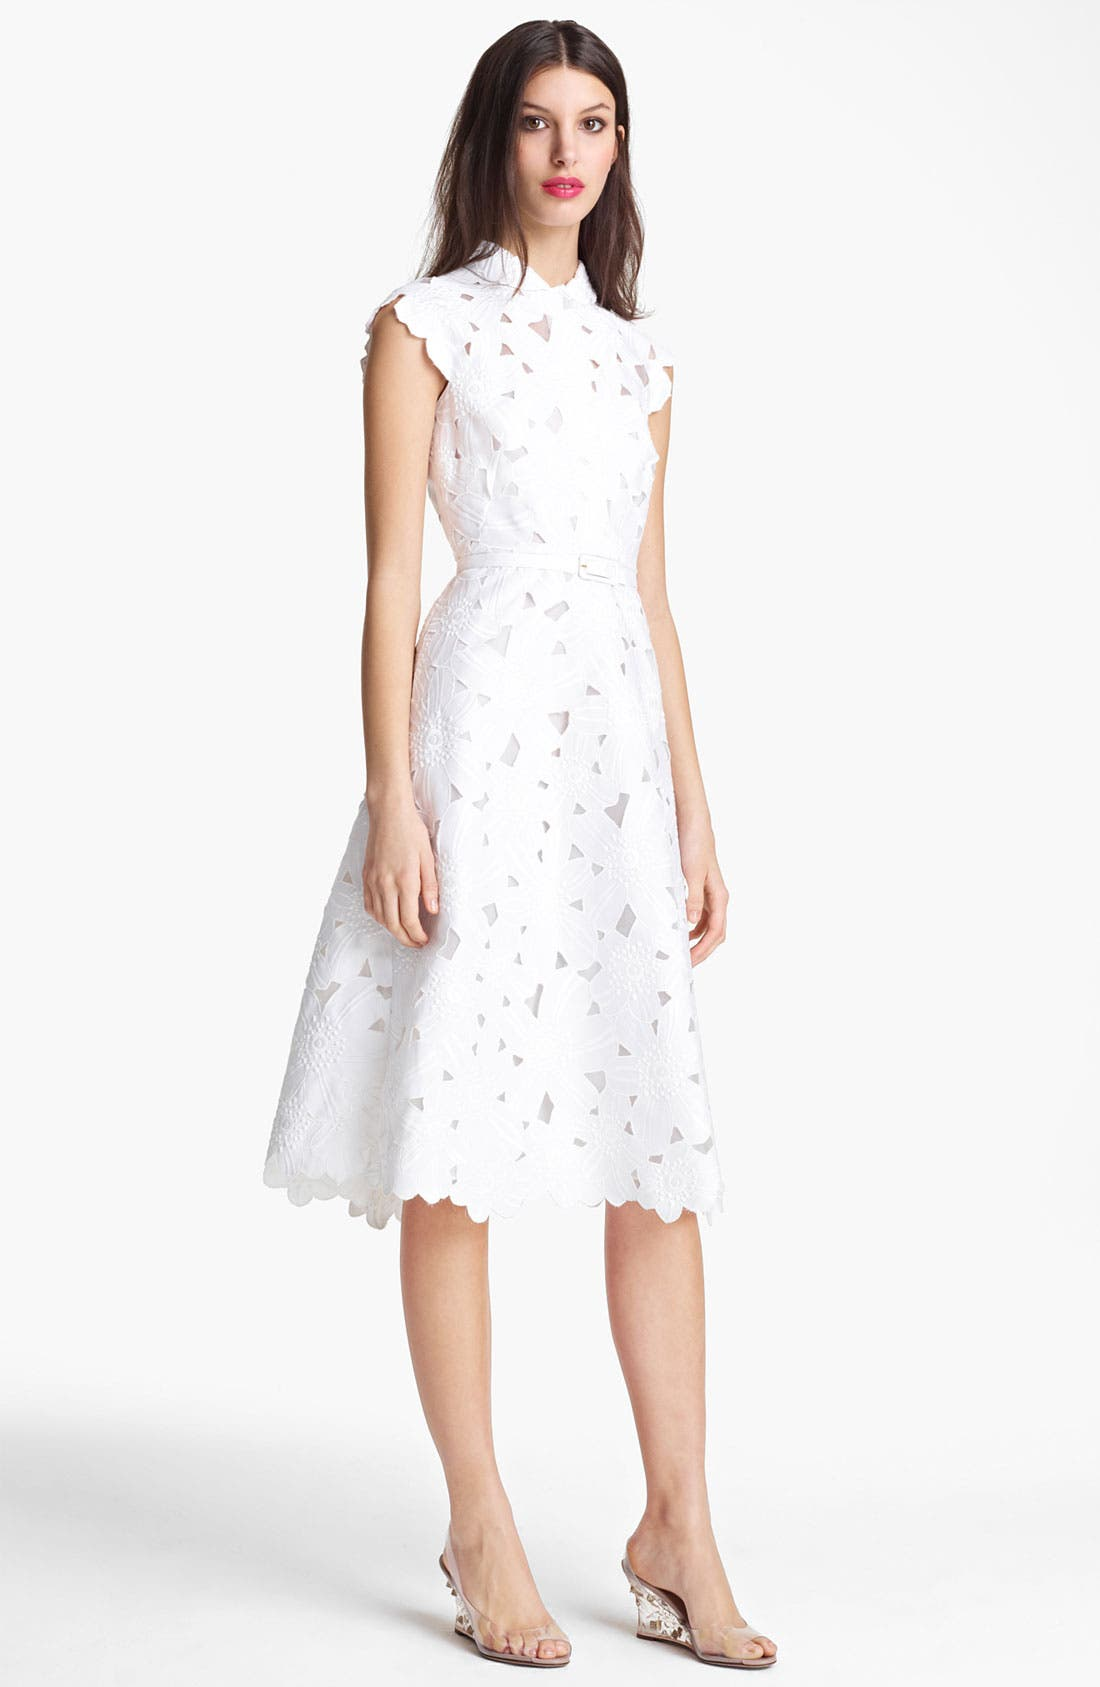 Alternate Image 1 Selected - Valentino Dress & Accessories